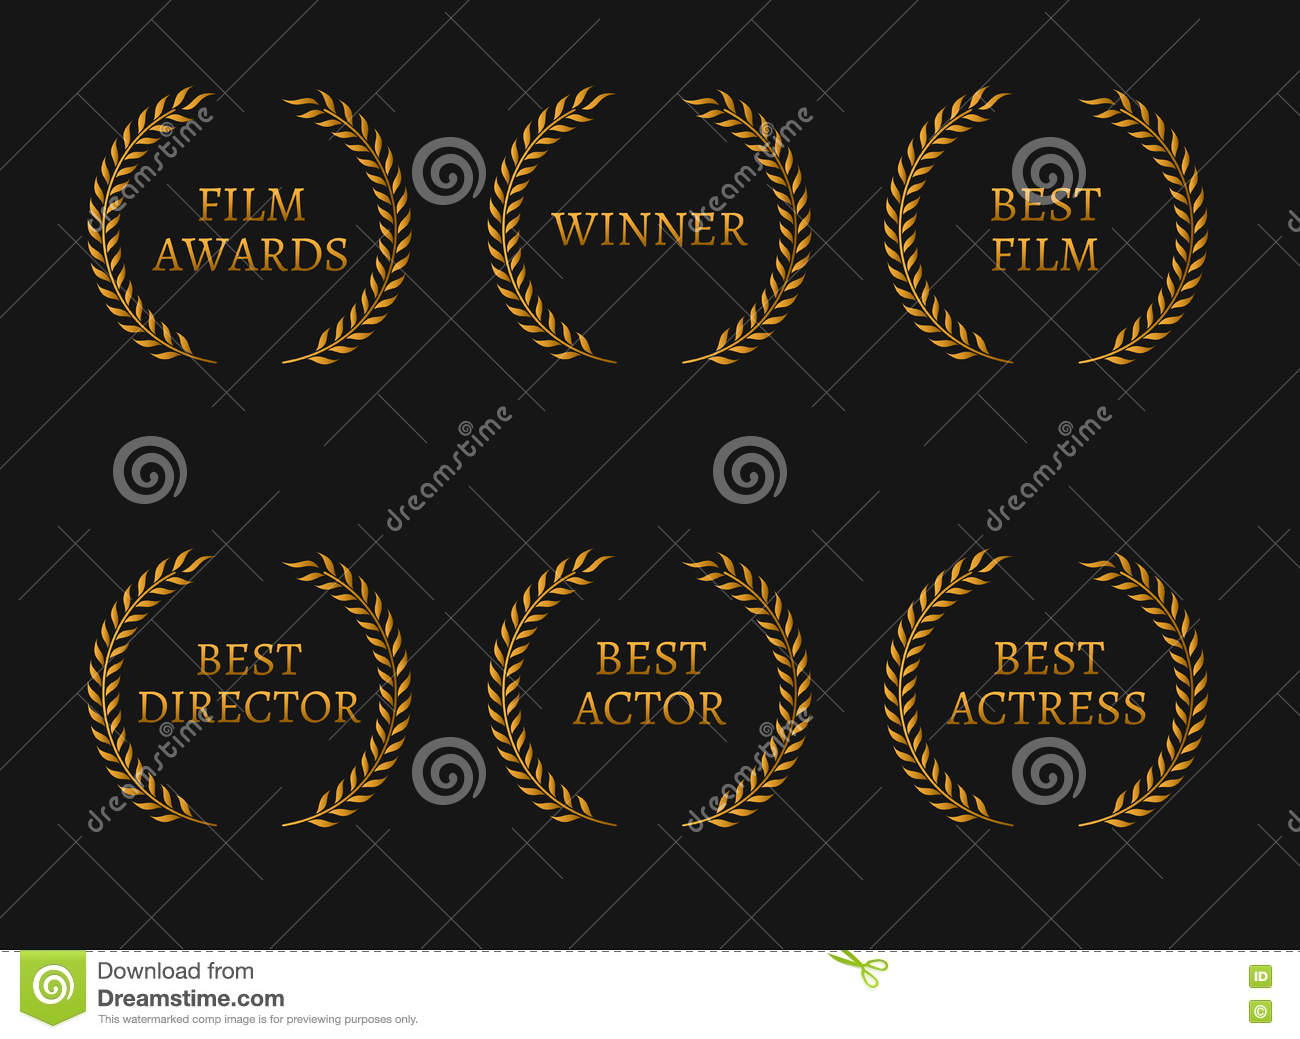 Film Academy Awards Winners And Best Nominee Gold Wreaths On Black Background Cartoon Vector